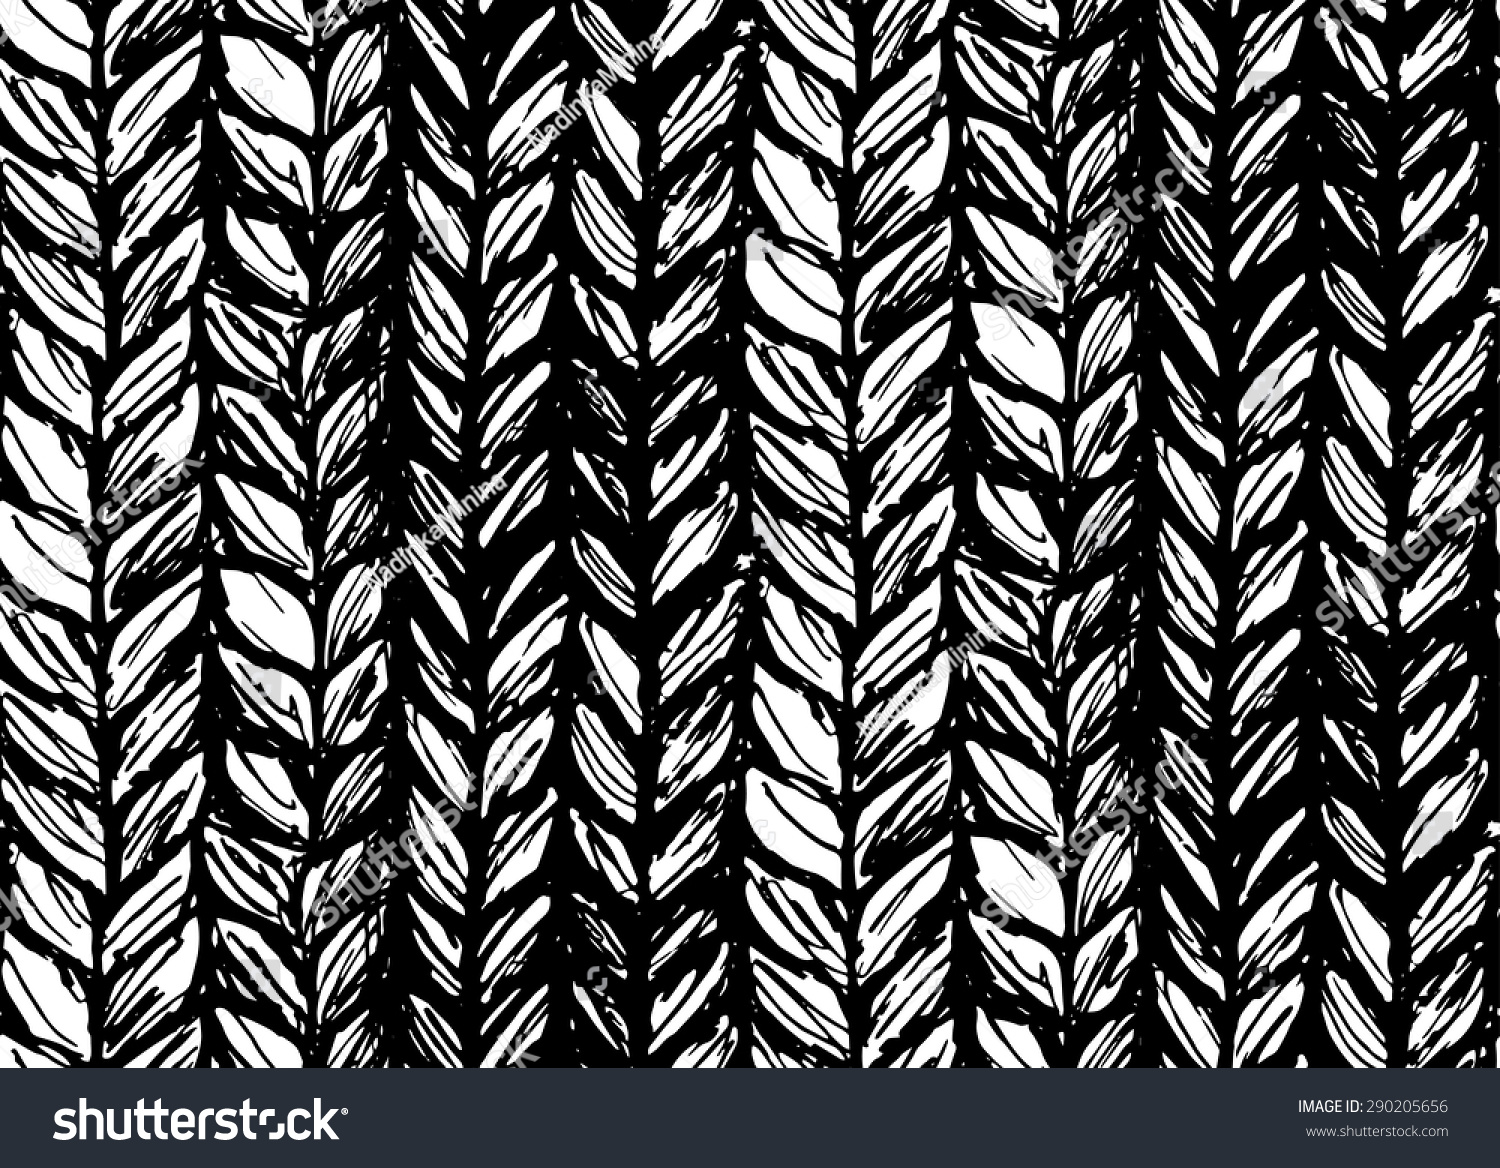 eded3ba6a Seamless Pattern Braids Endless Texture Stylized Stock Vector ...